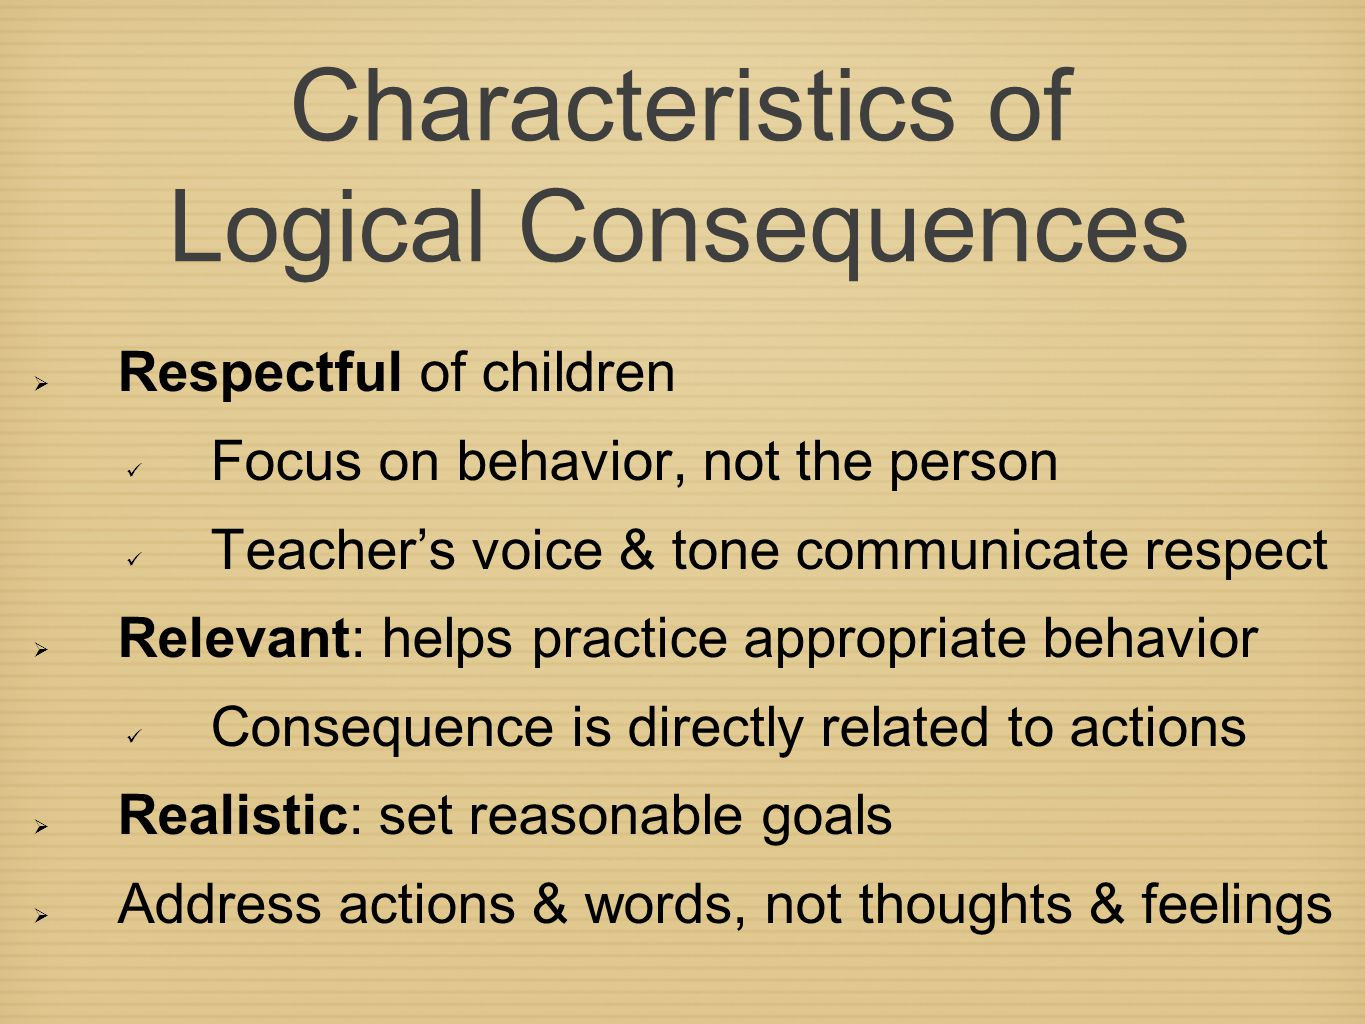 Characteristics of Logical Consequences  Respectful of children Focus on behavior, not the person Teacher's voice & tone communicate respect  Relevant: helps practice appropriate behavior Consequence is directly related to actions  Realistic: set reasonable goals  Address actions & words, not thoughts & feelings